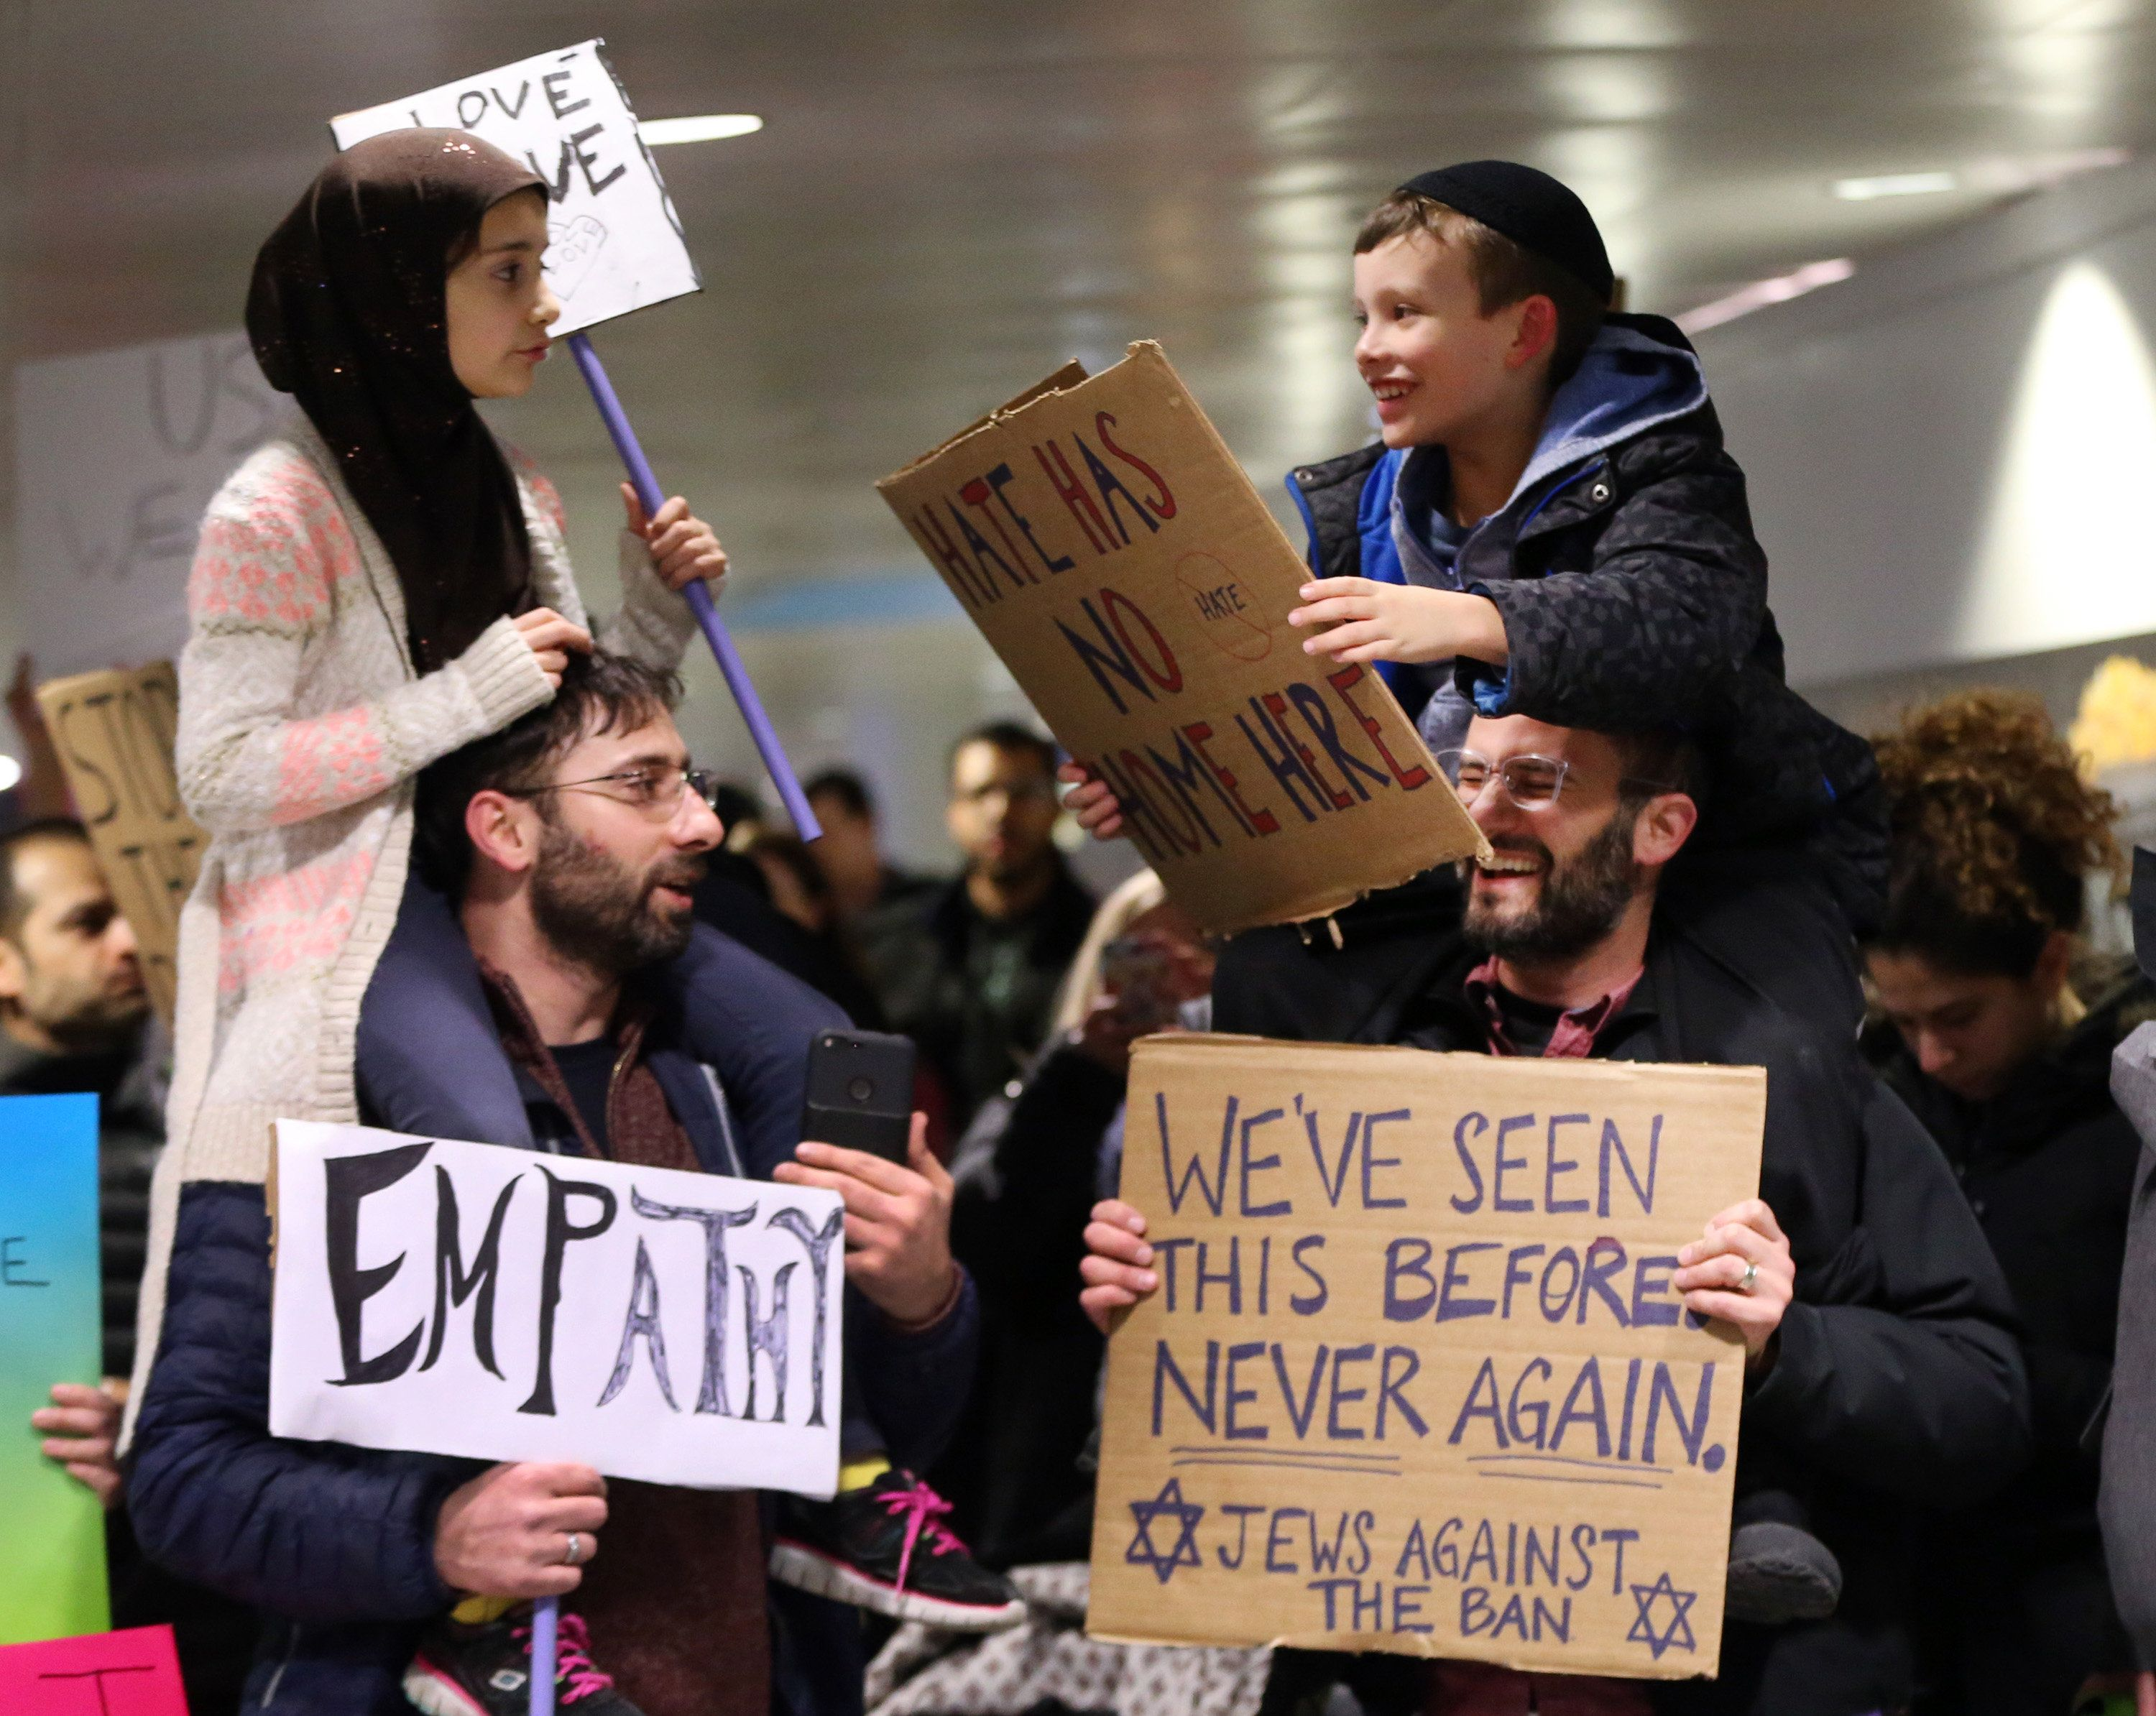 Meryem Yildirim, 7, left, sits on her father, Fatim, of Schaumburg, and Adin Bendat-Appell, 9, right, sits on his father, Rabbi Jordan Bendat-Appell, of Deerfield, during a protest on Monday, Jan. 30, 2017 at O'Hare International Airport in Chicago, Ill. (Nuccio DiNuzzo/Chicago Tribune/TNS via Getty Images)